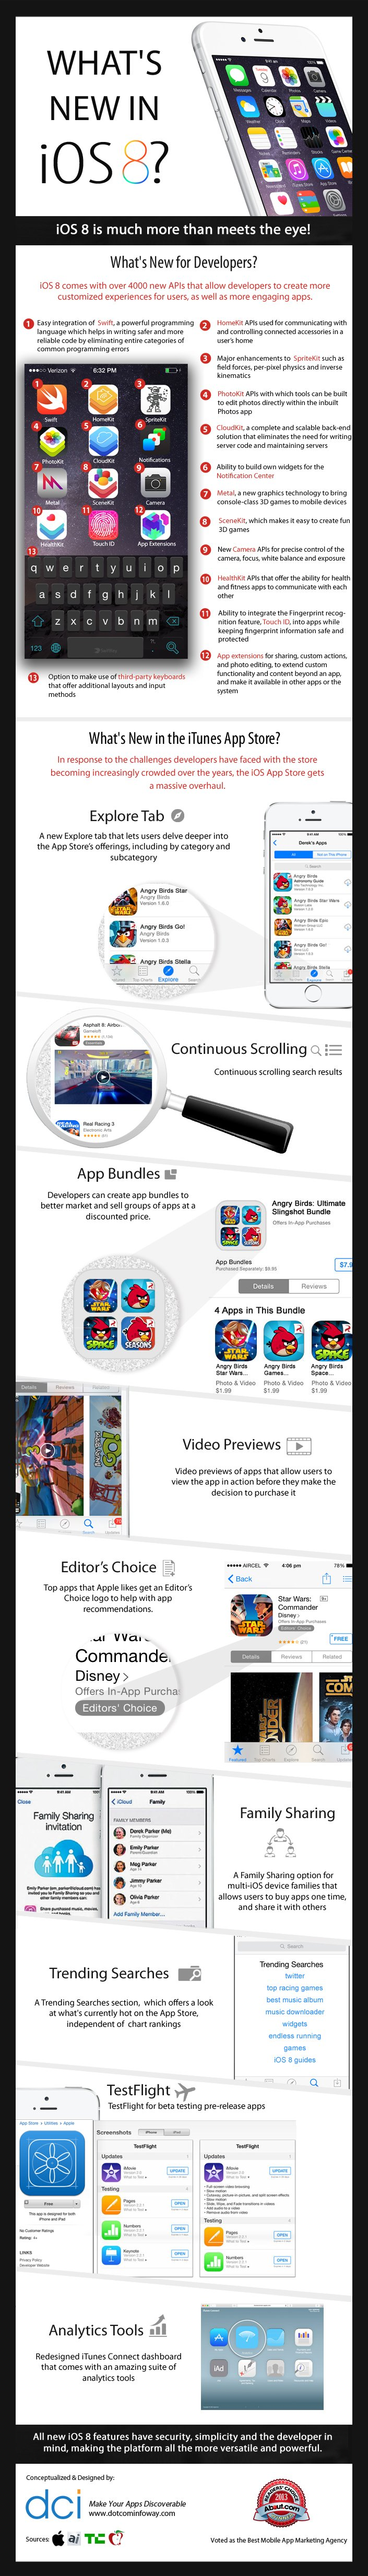 infographic-what-is-new-in-ios8